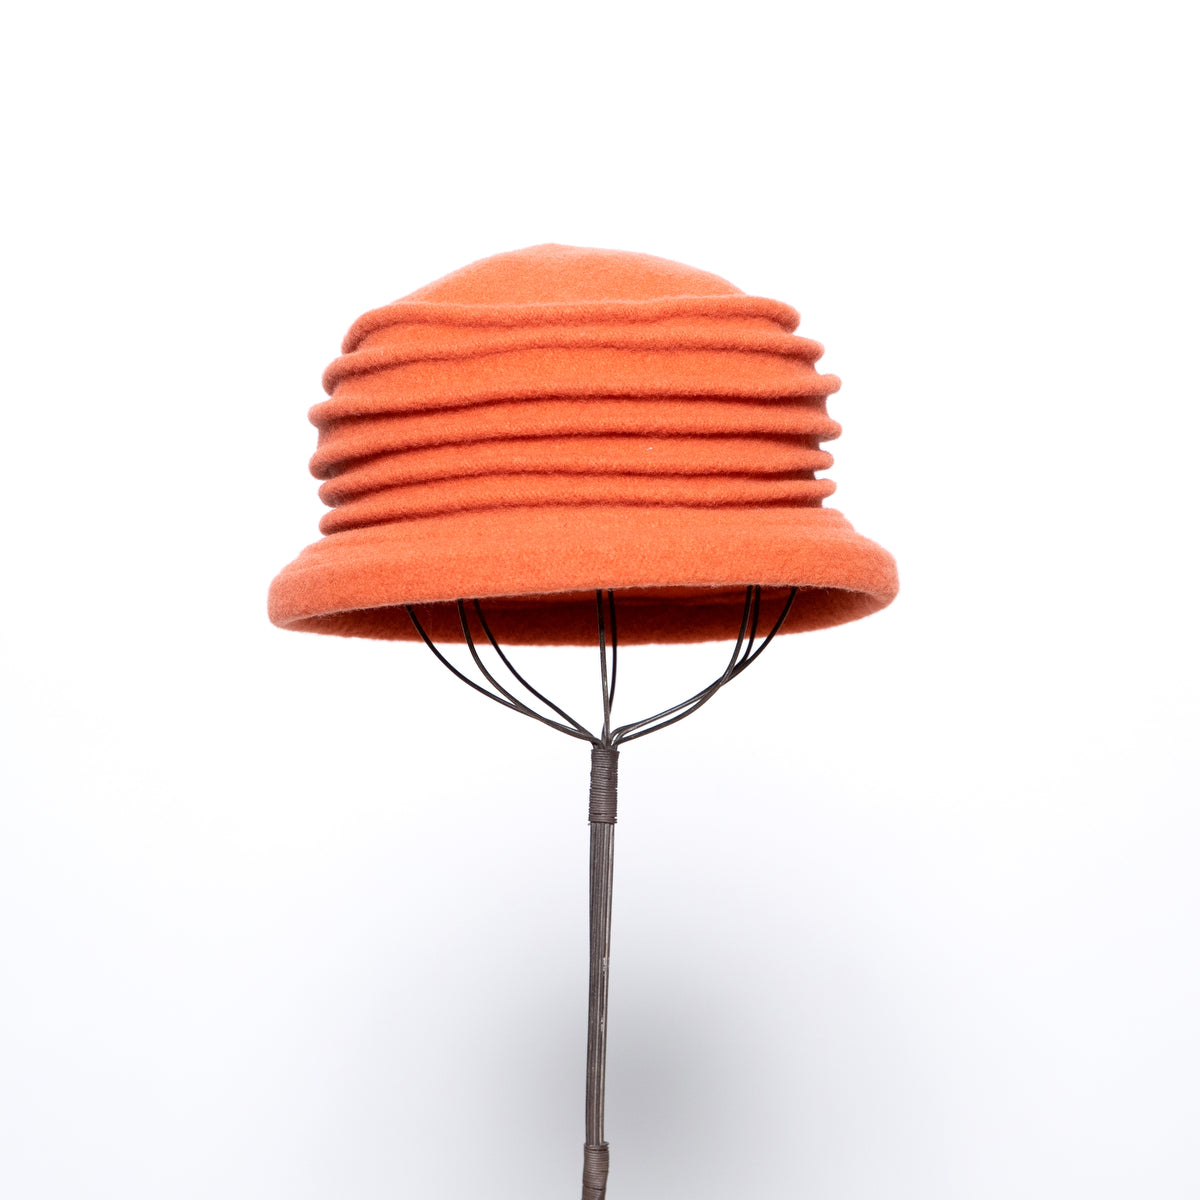 Anytra Ovelie Hat in Orange